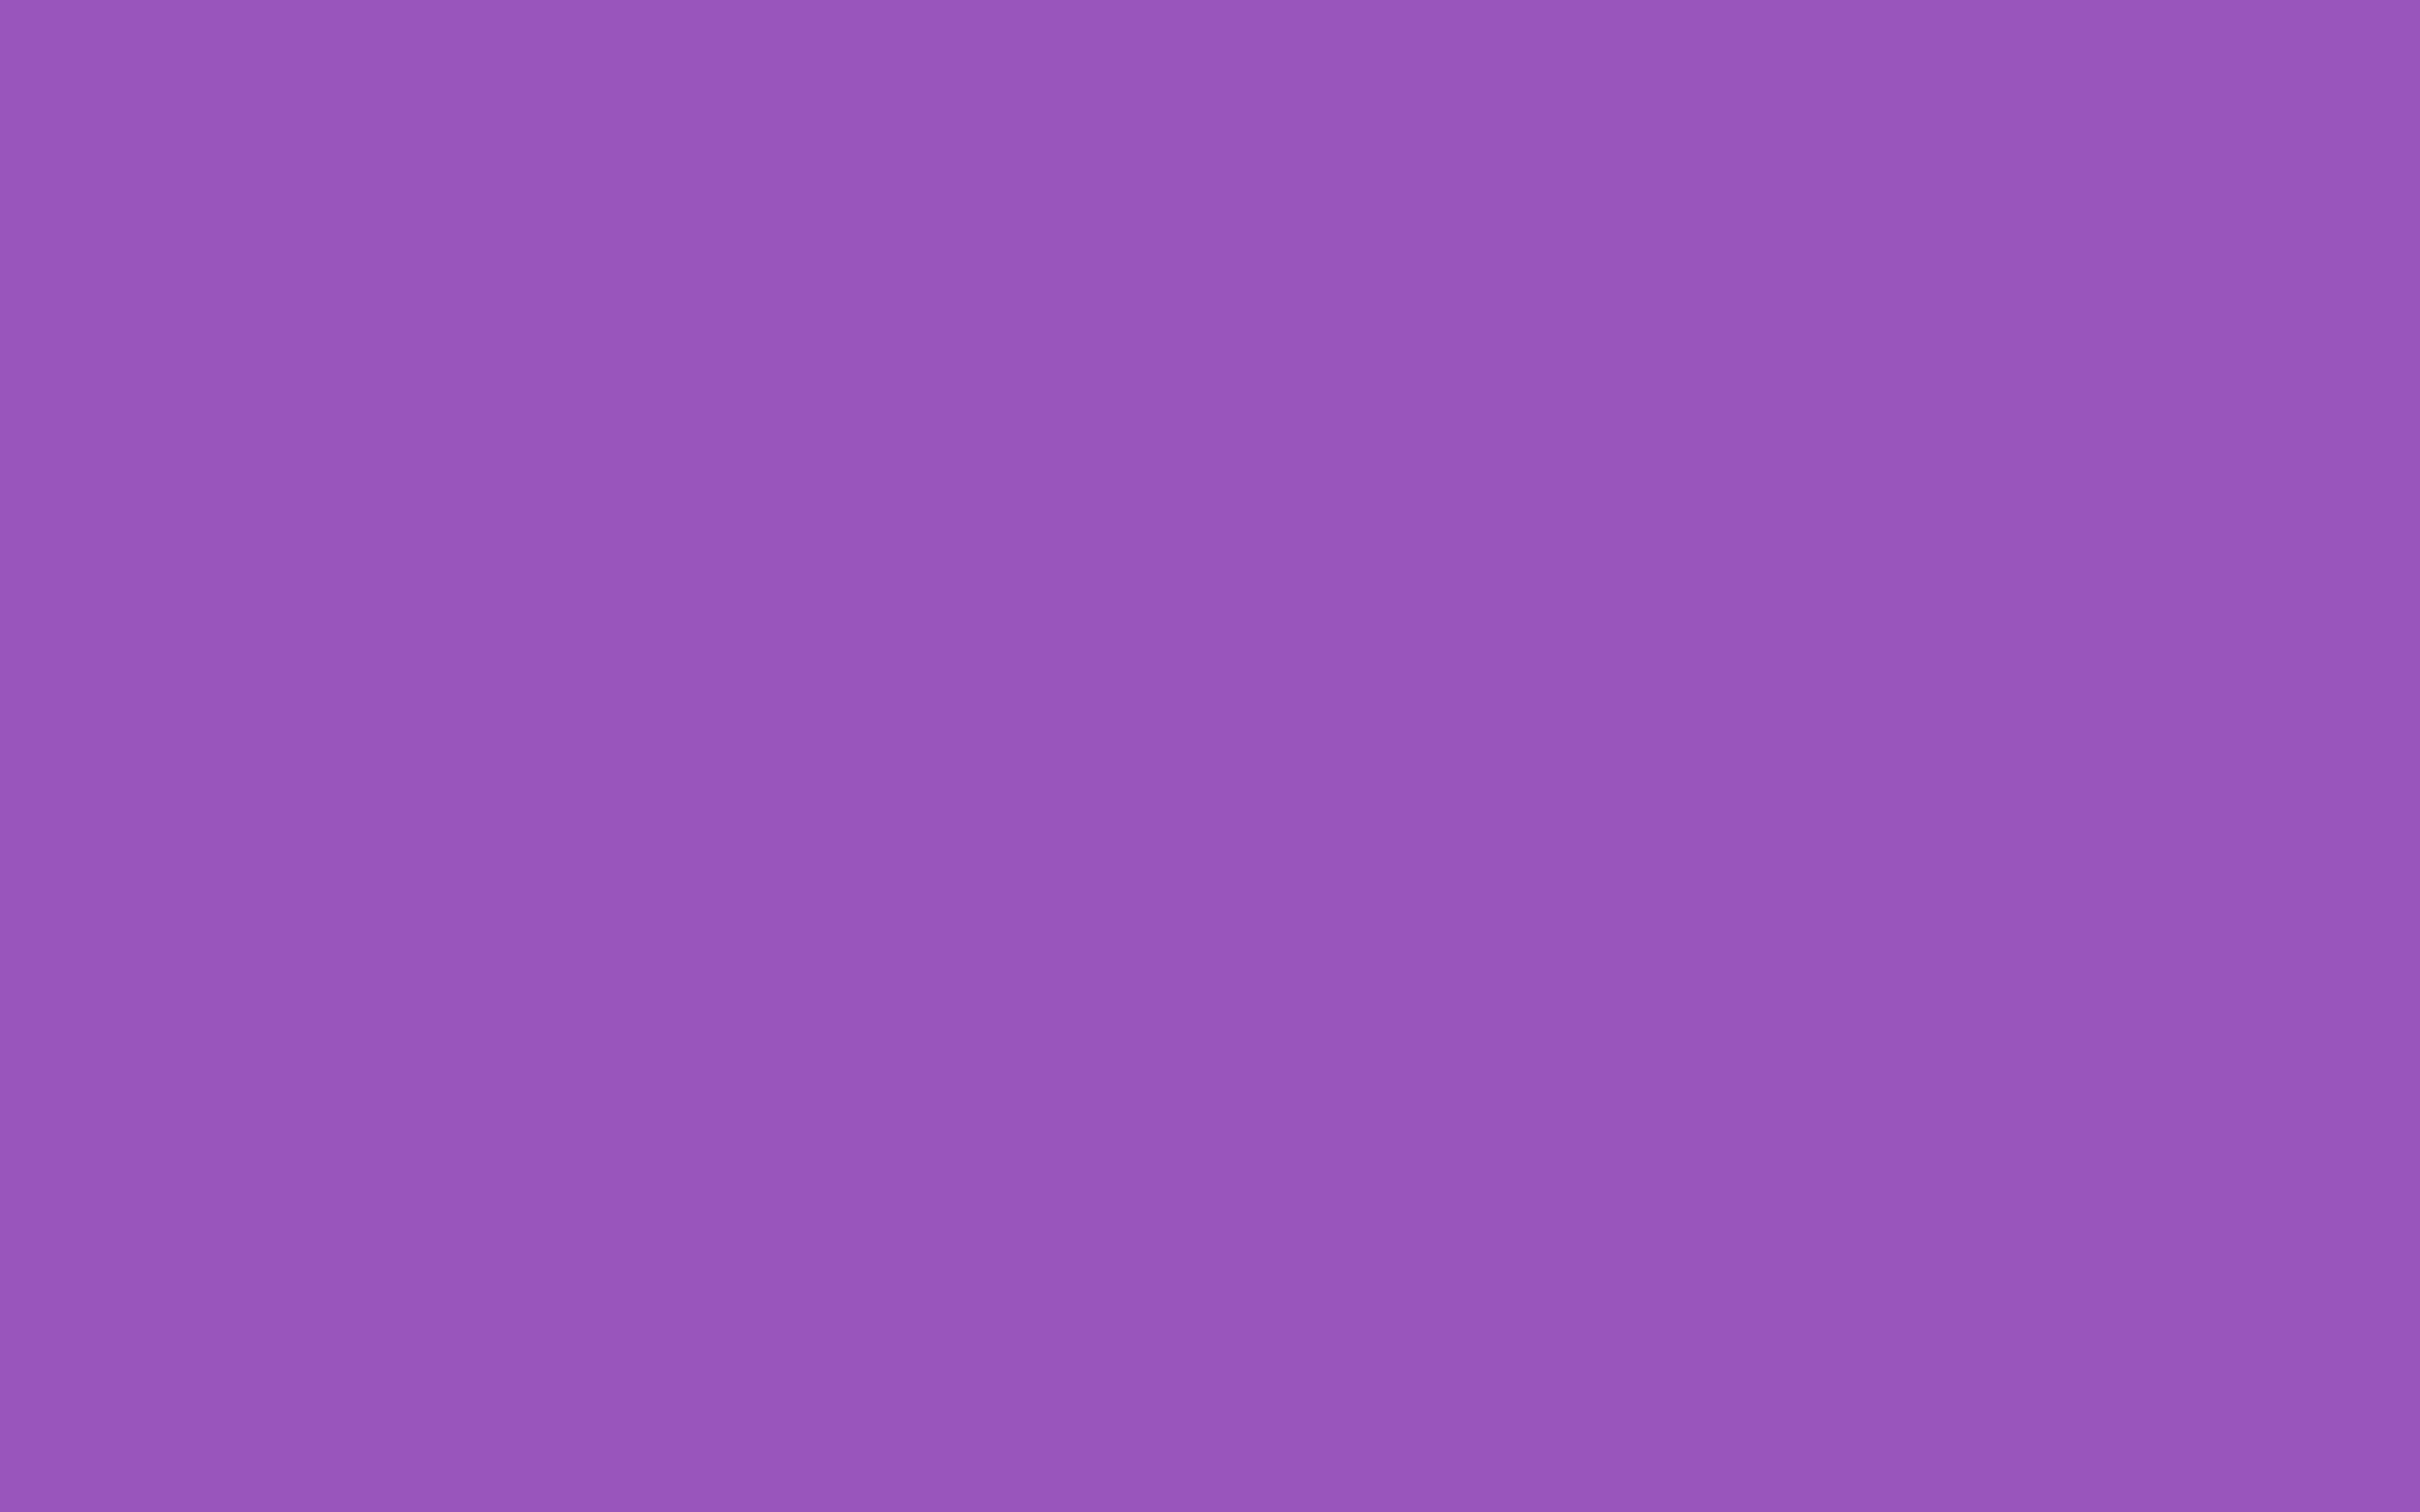 2560x1600 Deep Lilac Solid Color Background